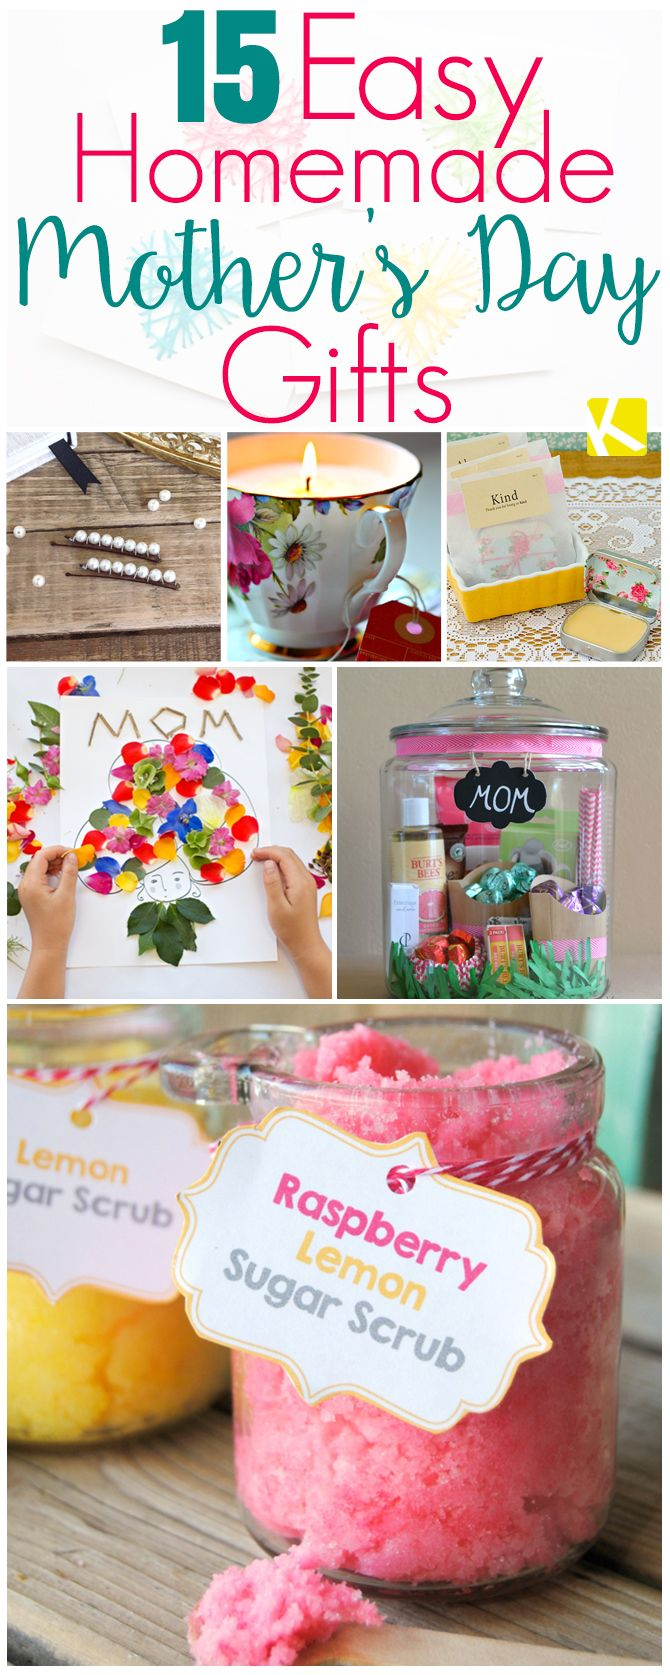 15 Mother's Day Gifts That Are Ridiculously Easy to Make